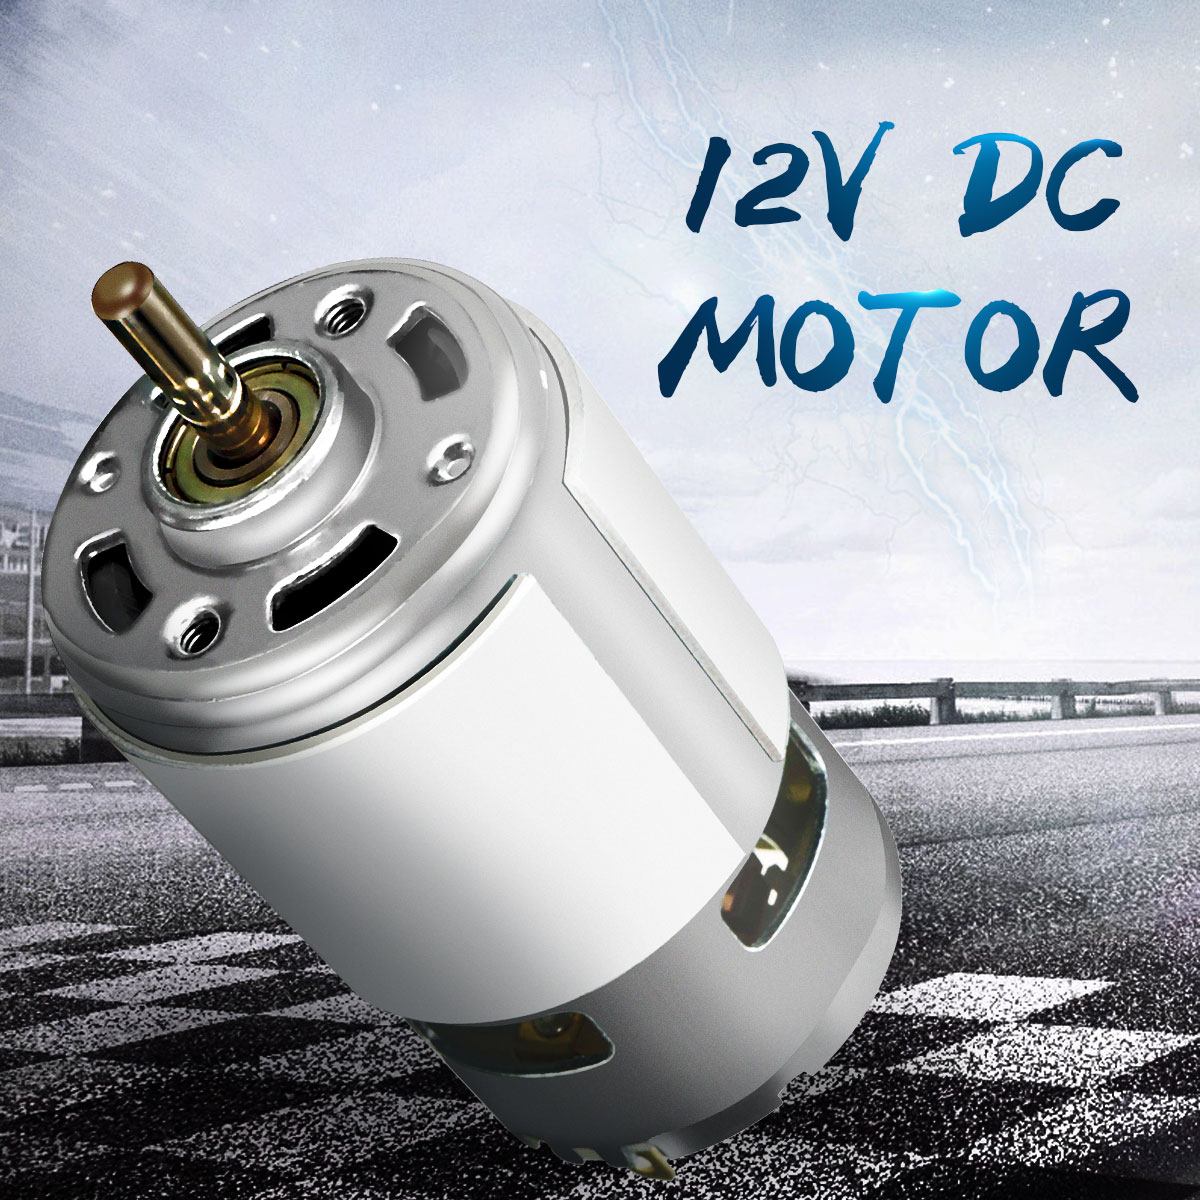 1Pcs New DC12-24V 150W 13000-15000RPM 775 Micro High Speed Power Motor 5mm Shaft Electric Machinery Tool1Pcs New DC12-24V 150W 13000-15000RPM 775 Micro High Speed Power Motor 5mm Shaft Electric Machinery Tool